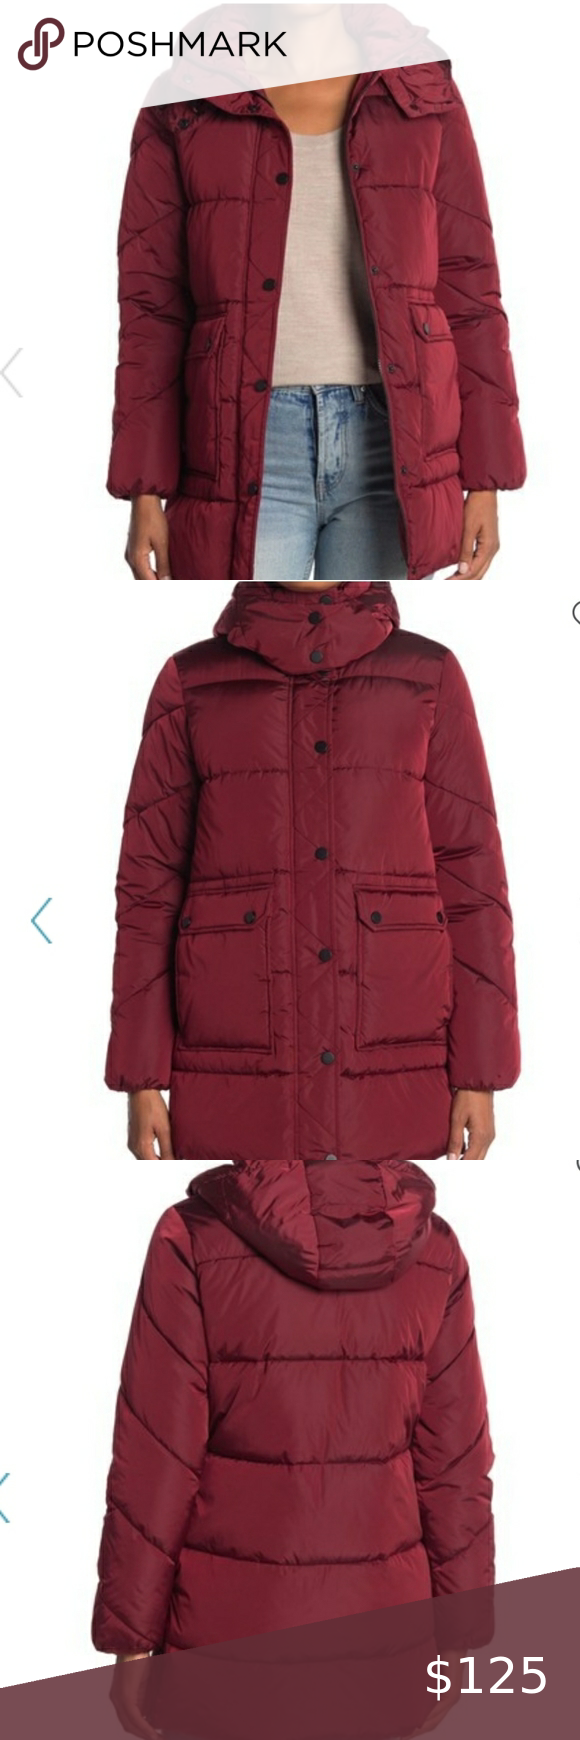 Lucky Brand Missy Hooded Puffer Jacket This Hooded Puffer Jacket Is A Luxe Outerwear Staple That Will Keep Red Puffer Jacket Coats Jackets Women Puffer Jackets [ 1740 x 580 Pixel ]